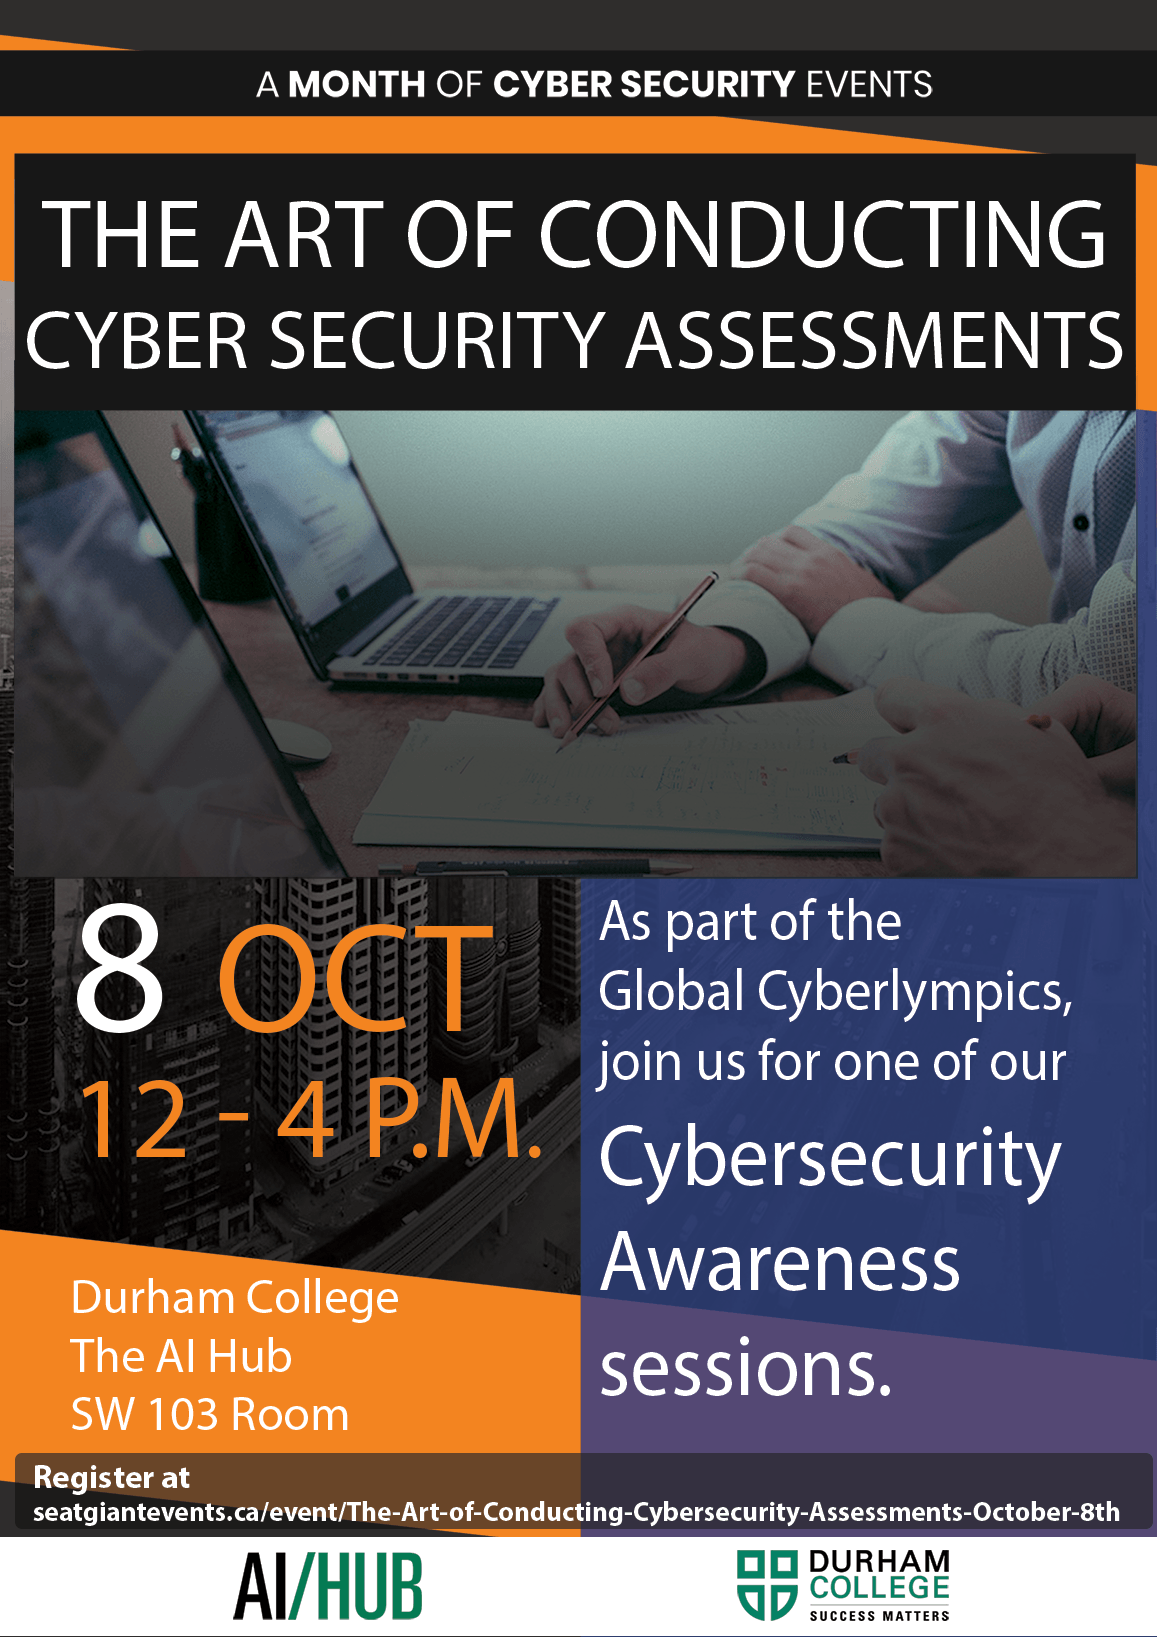 The Art of Conducting Cybersecurity Assessments October 8th